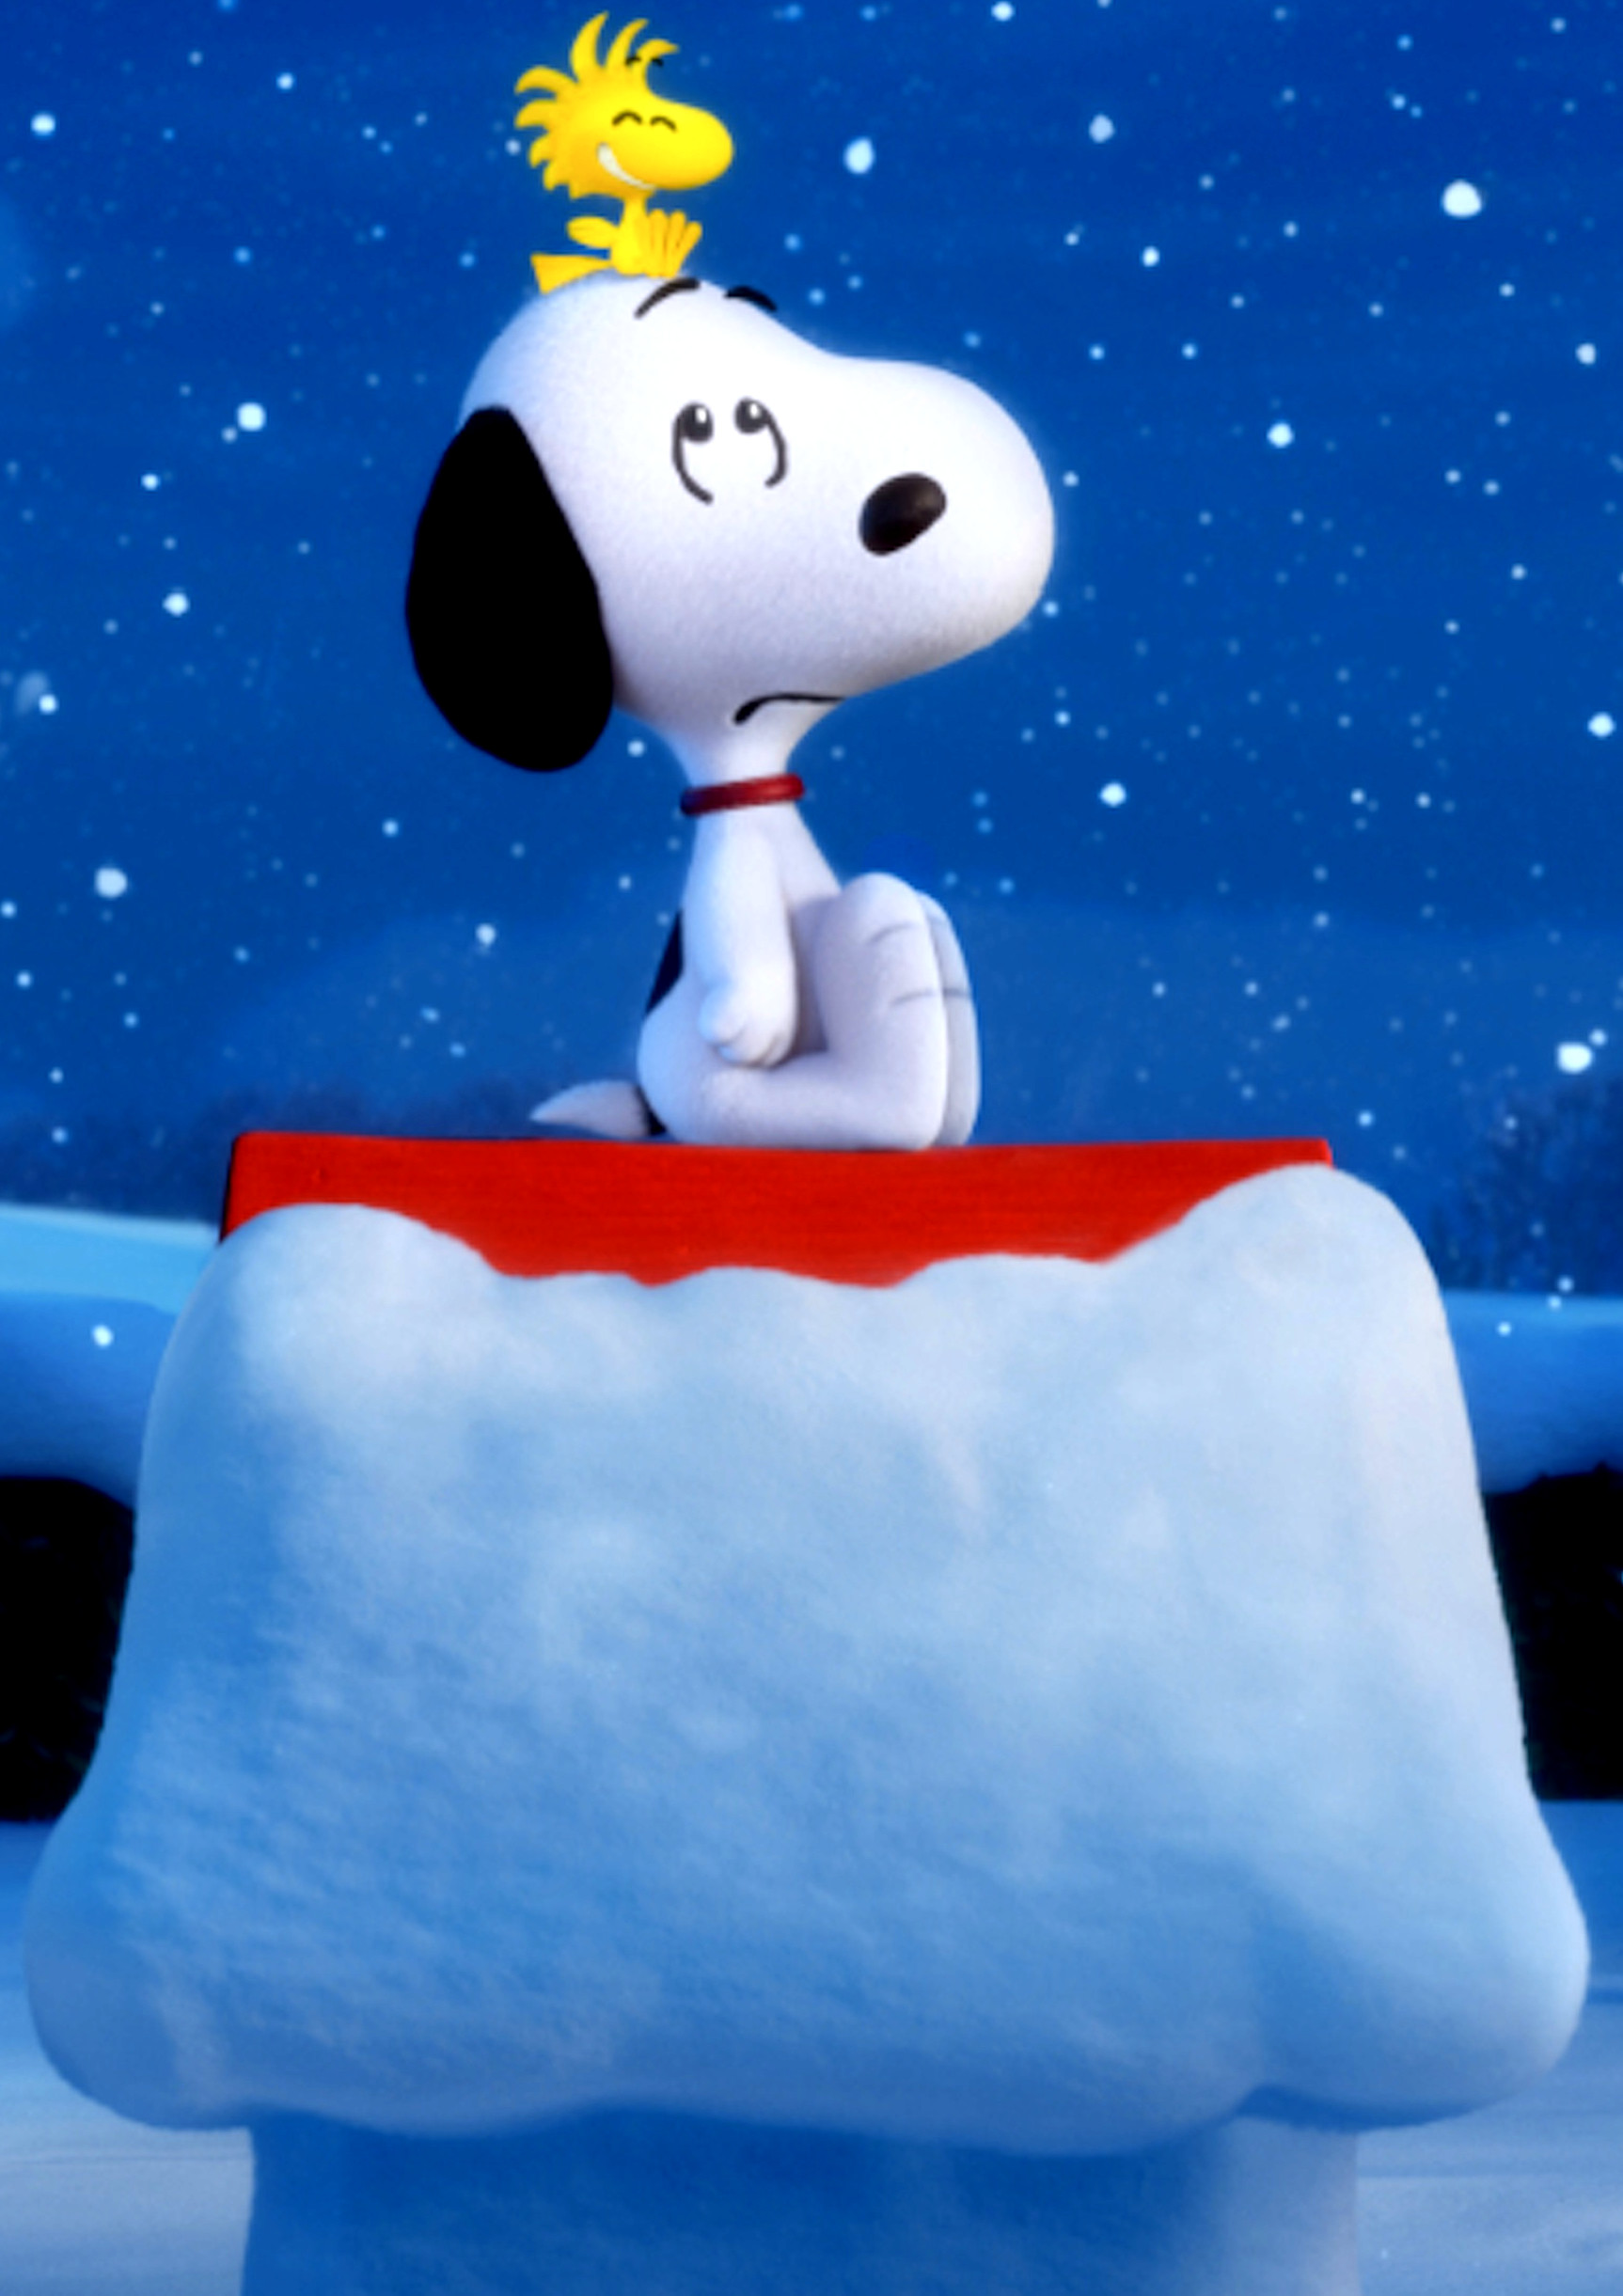 … The Peanuts Movie (Snoopy And Woodstock) by BradSnoopy97